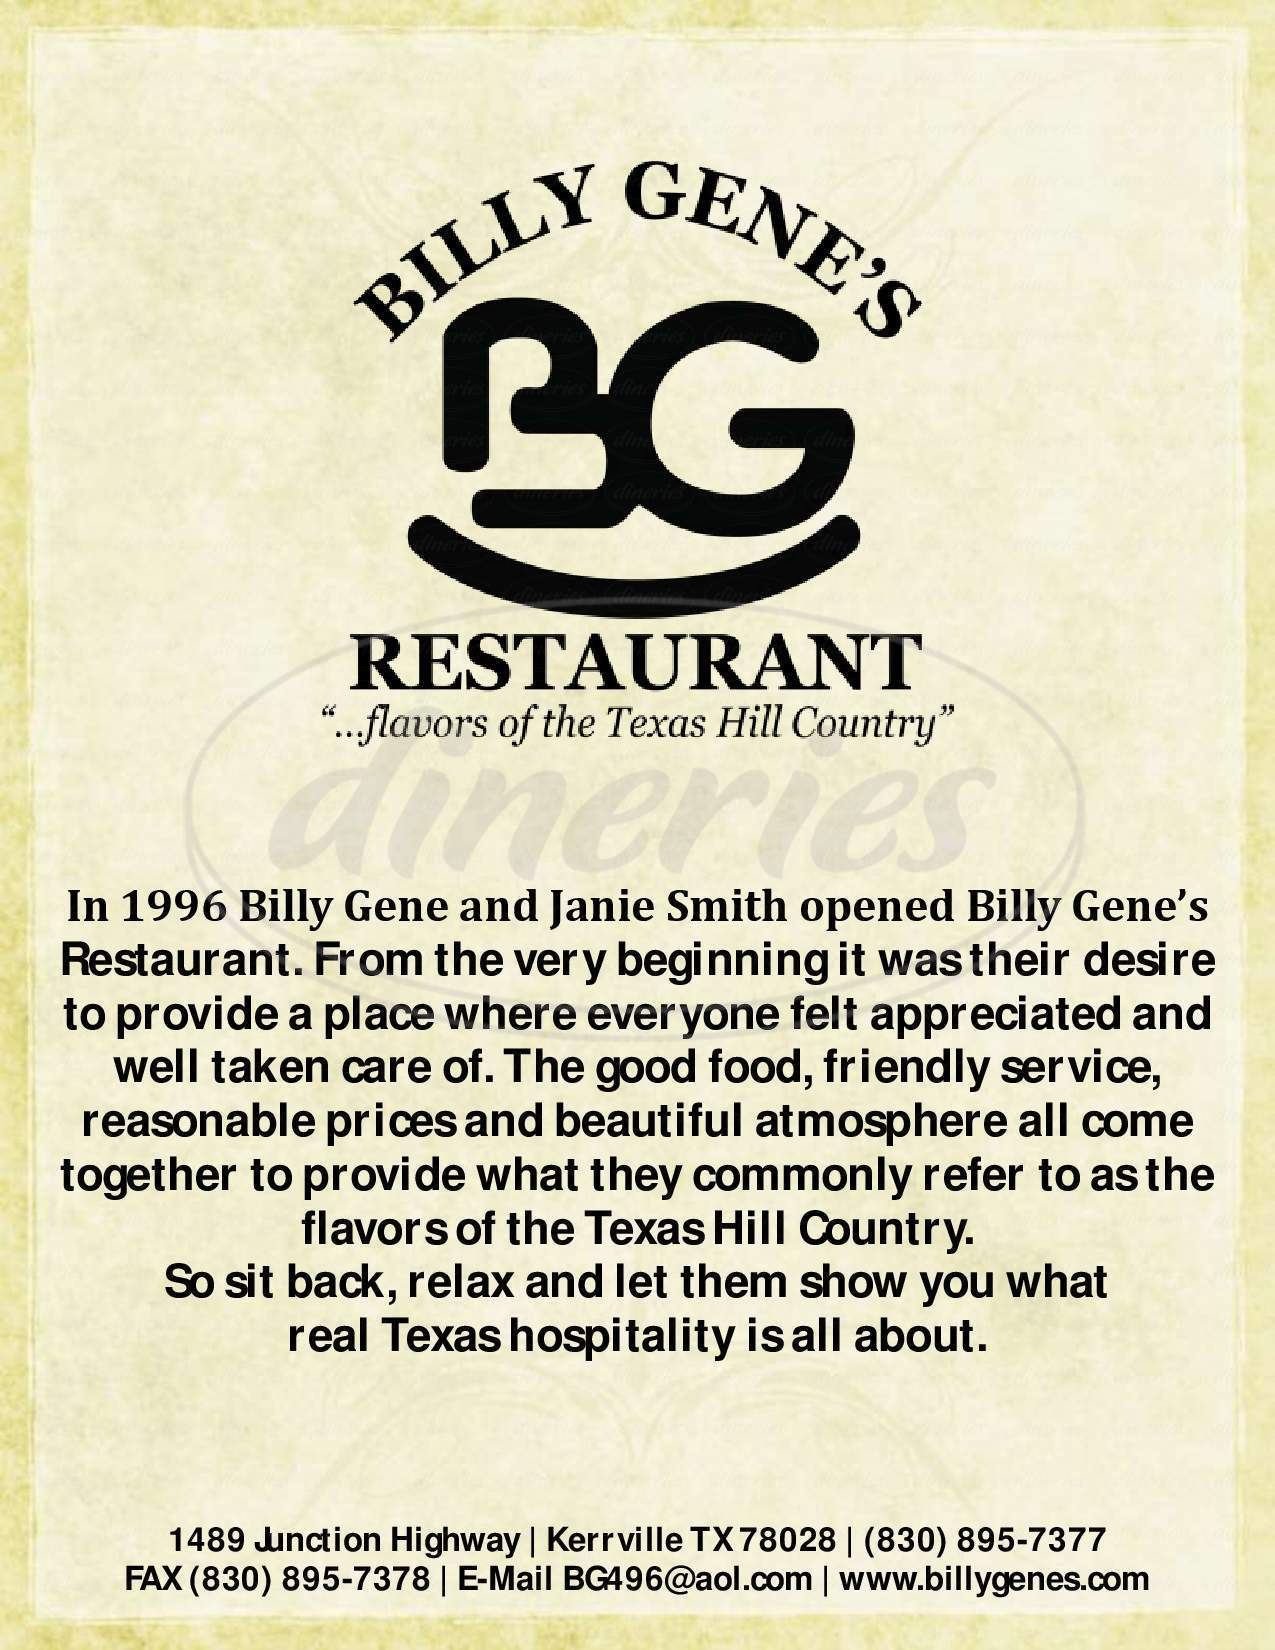 menu for Billy Gene's Reataurant